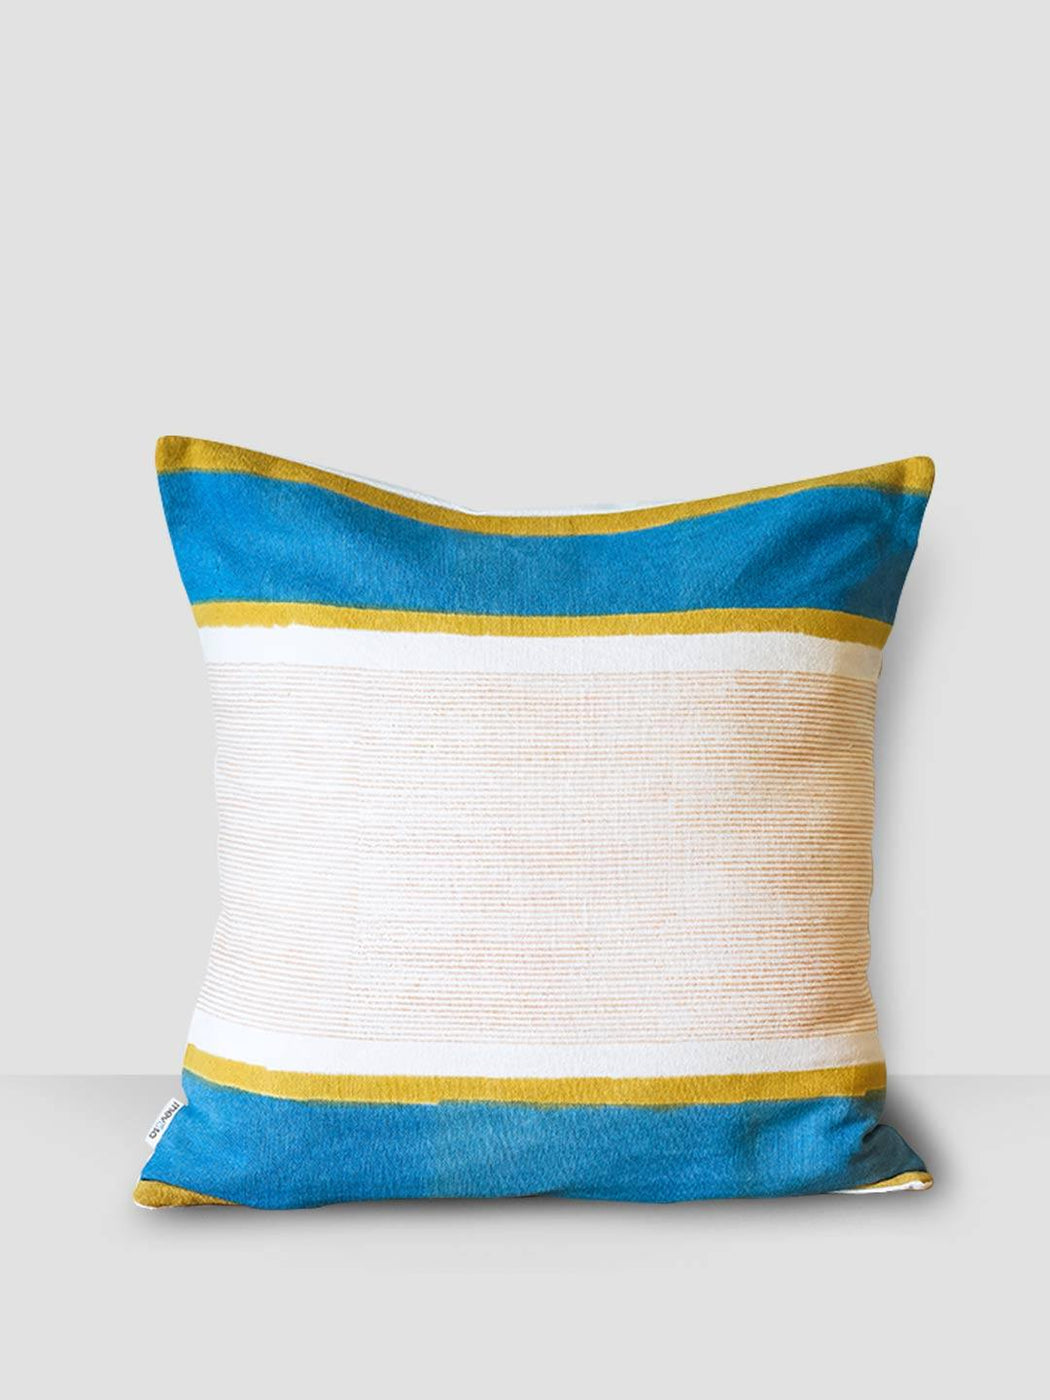 Aegean Hues Cushion Cover - Stripes  With Yellow & Blue Border - Thevasa